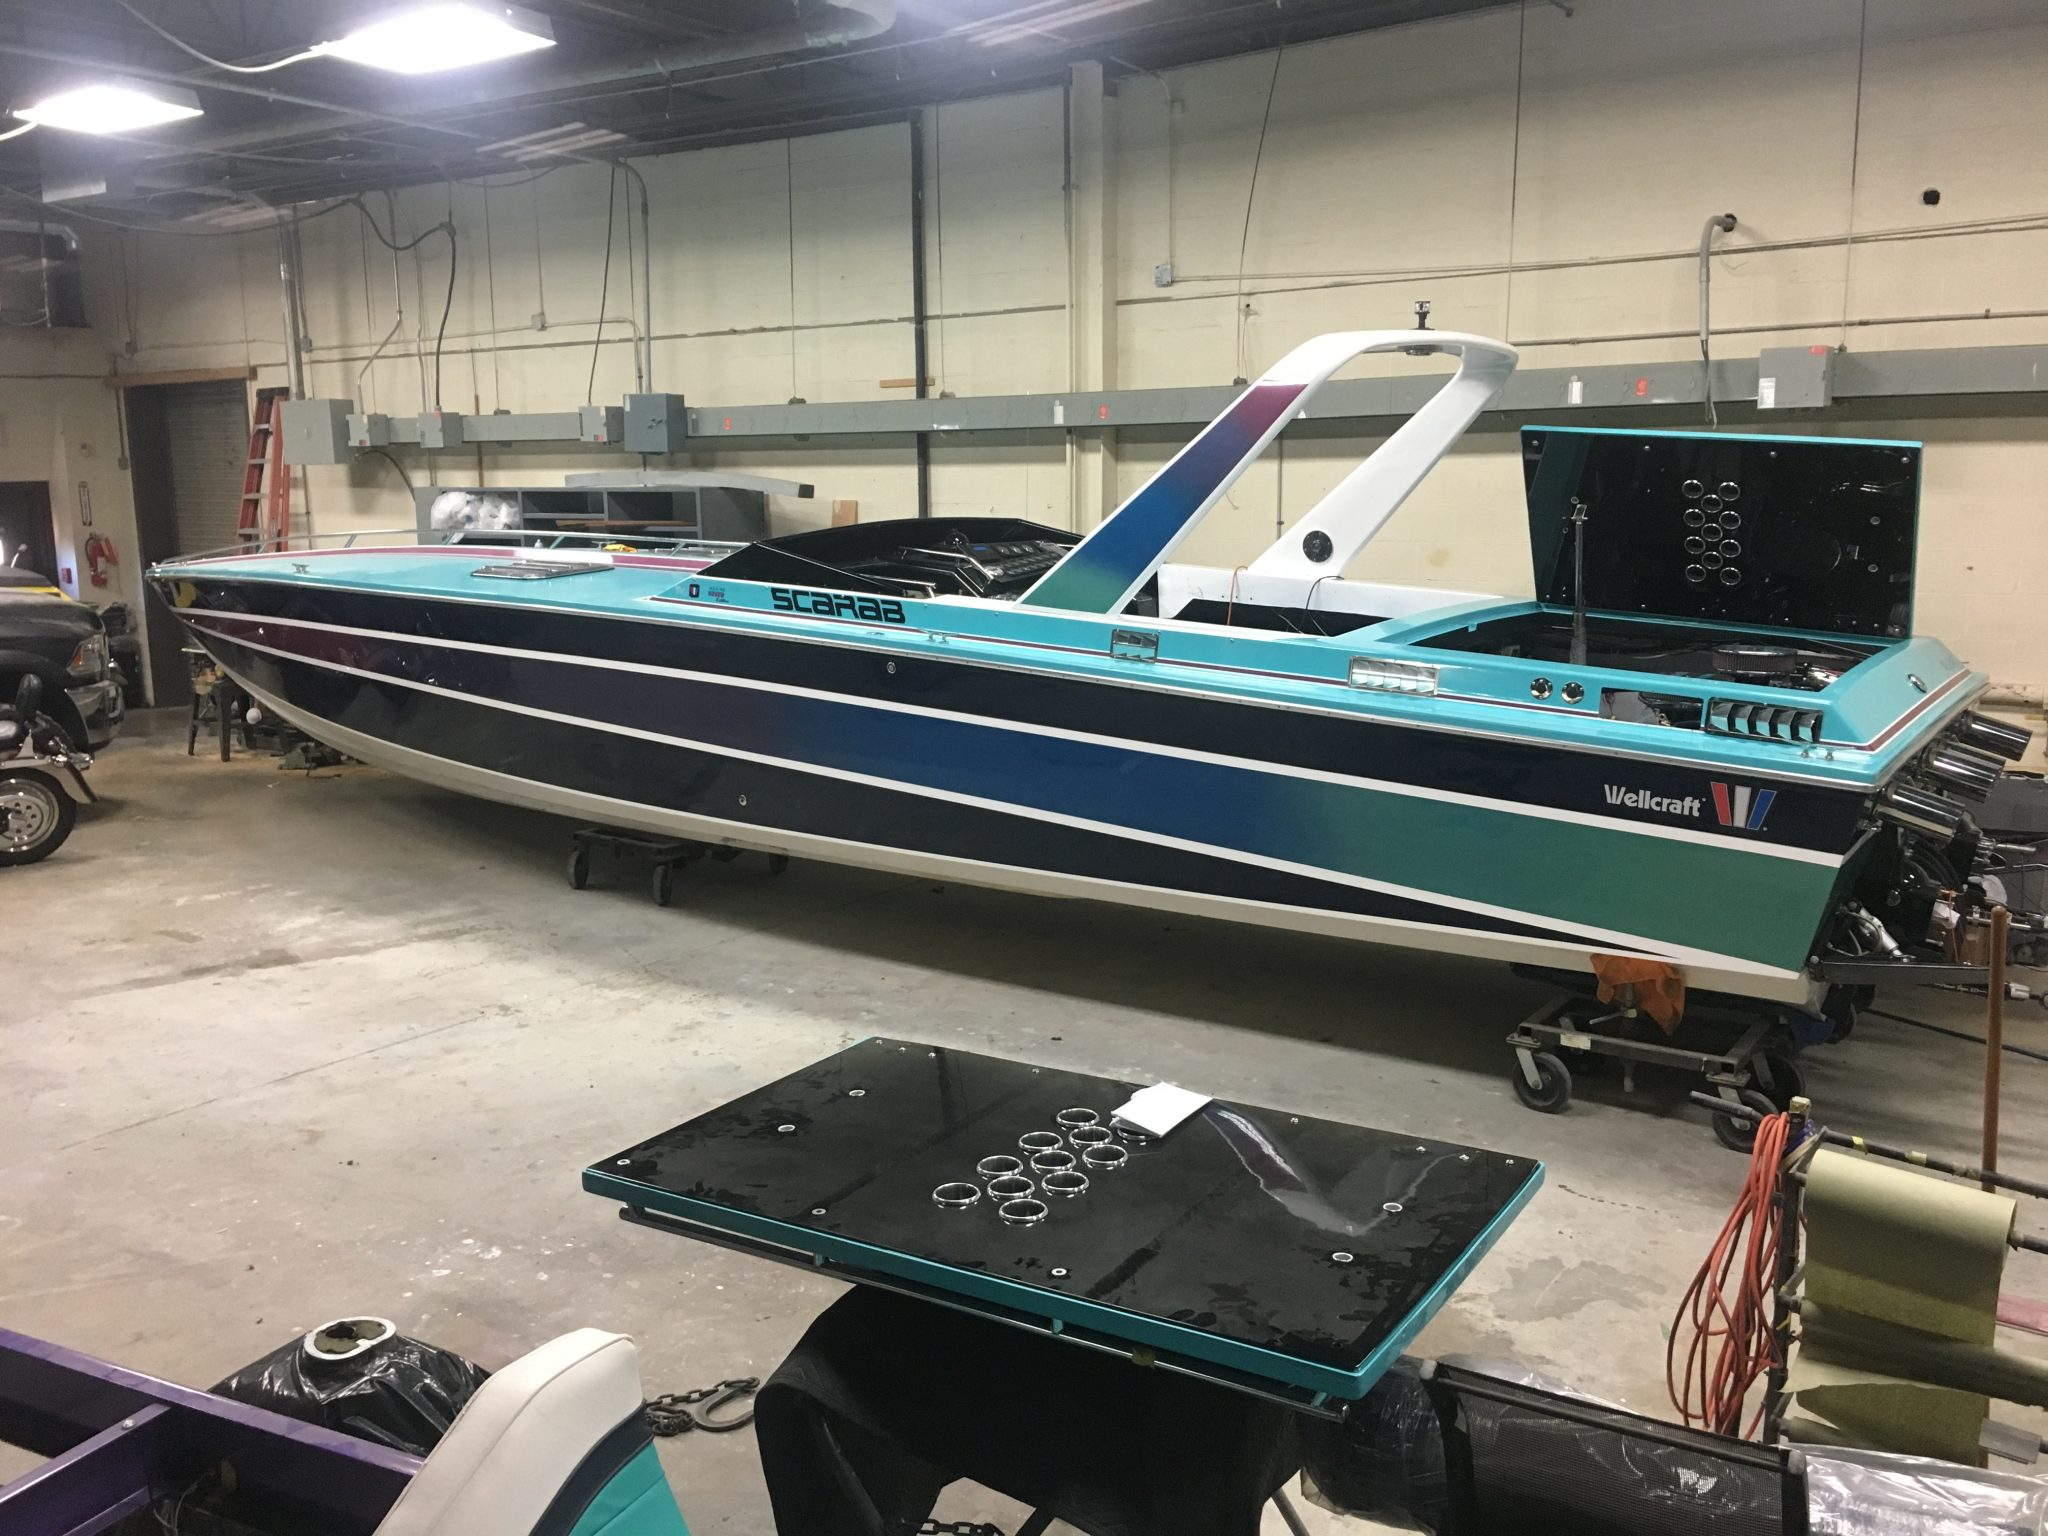 1986 Miami Vice Edition Scarab Completely Restored and